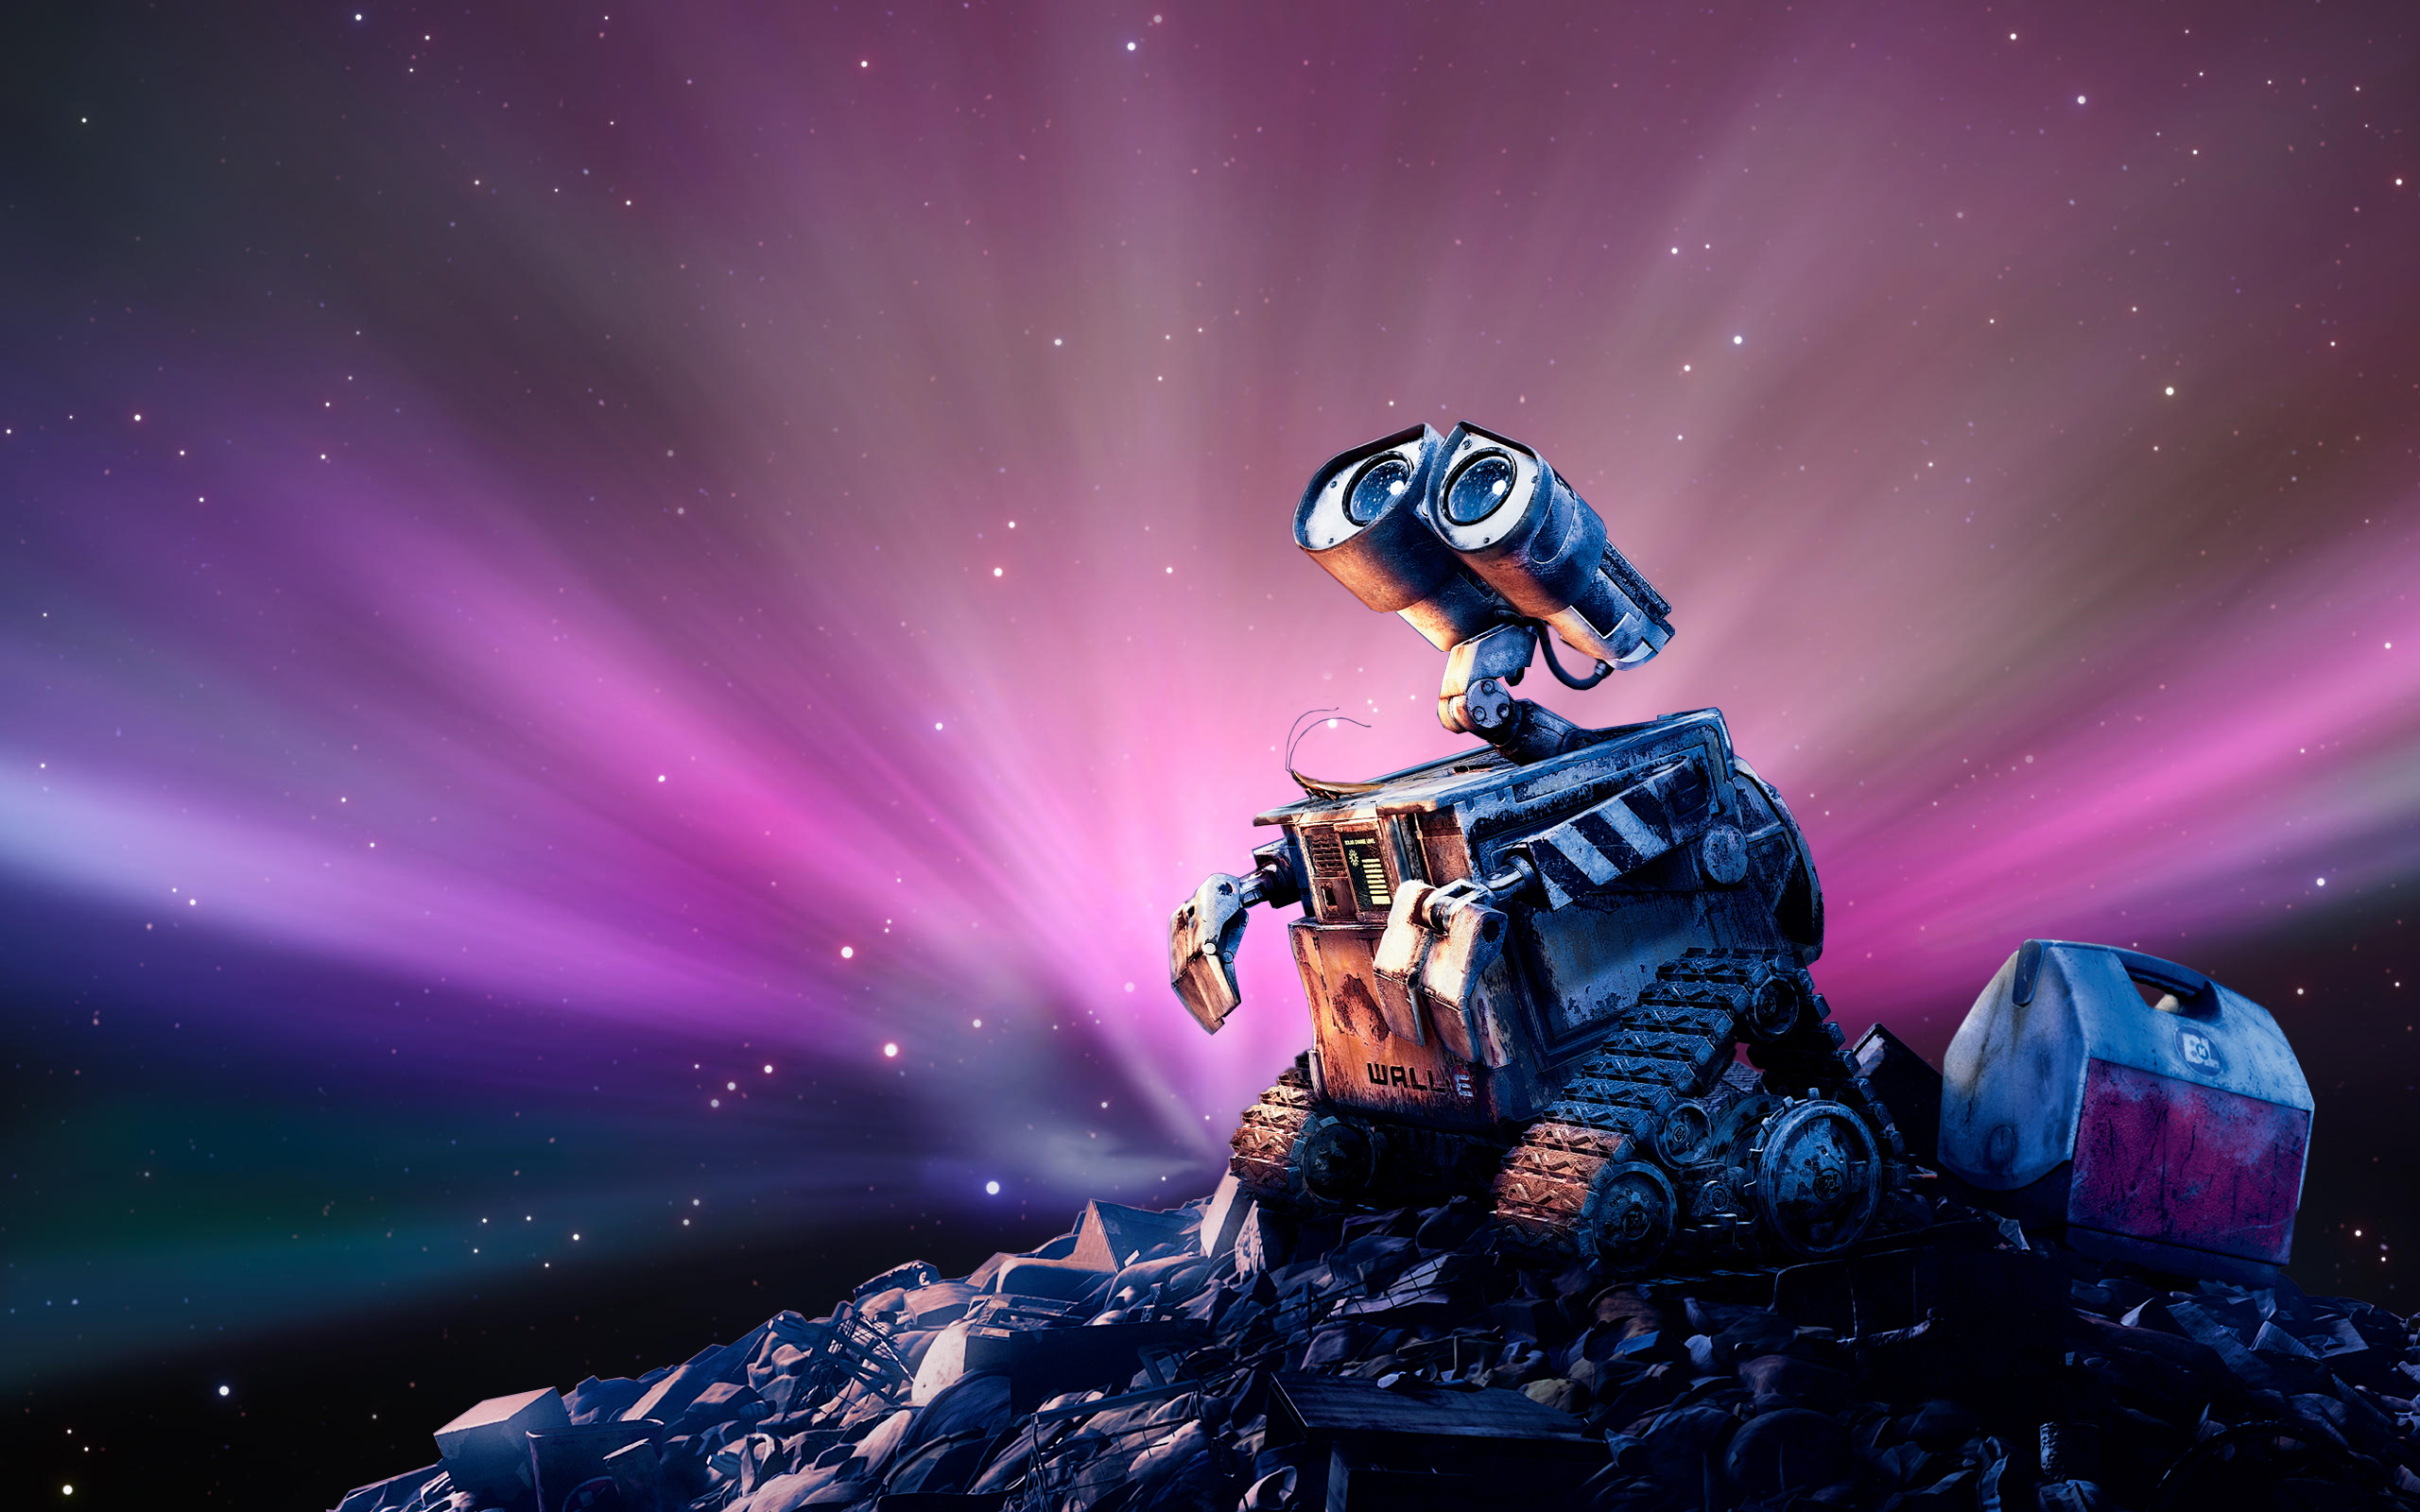 Free Download Walle Wallpapers Desktop Wallpapers 2560x1600 For